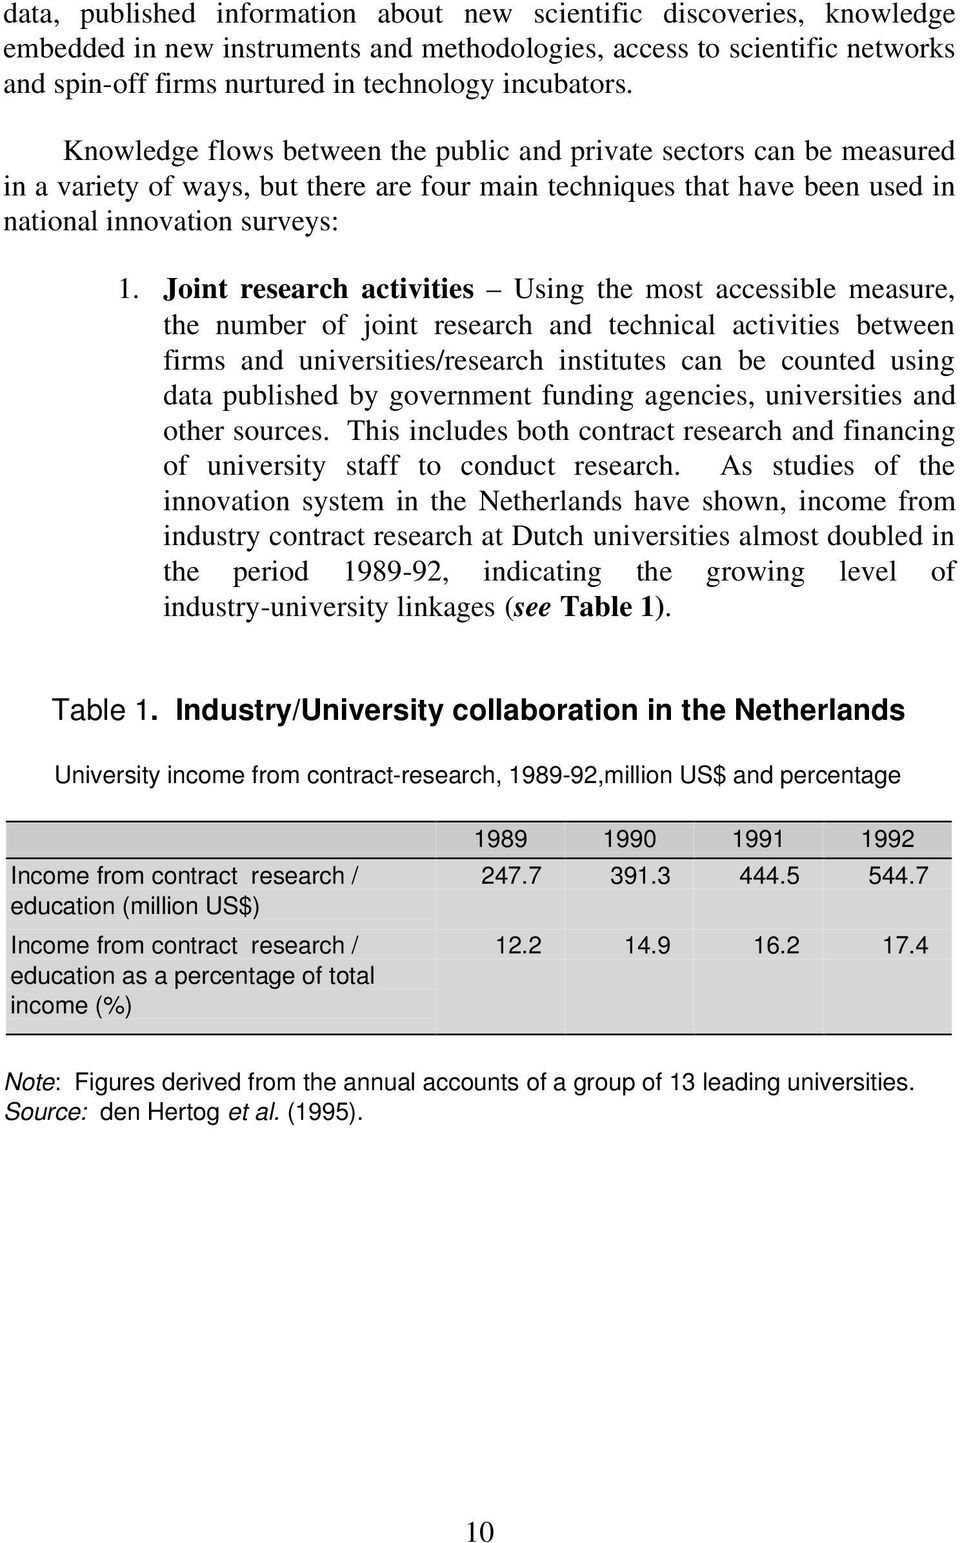 Joint research activities Using the most accessible measure, the number of joint research and technical activities between firms and universities/research institutes can be counted using data